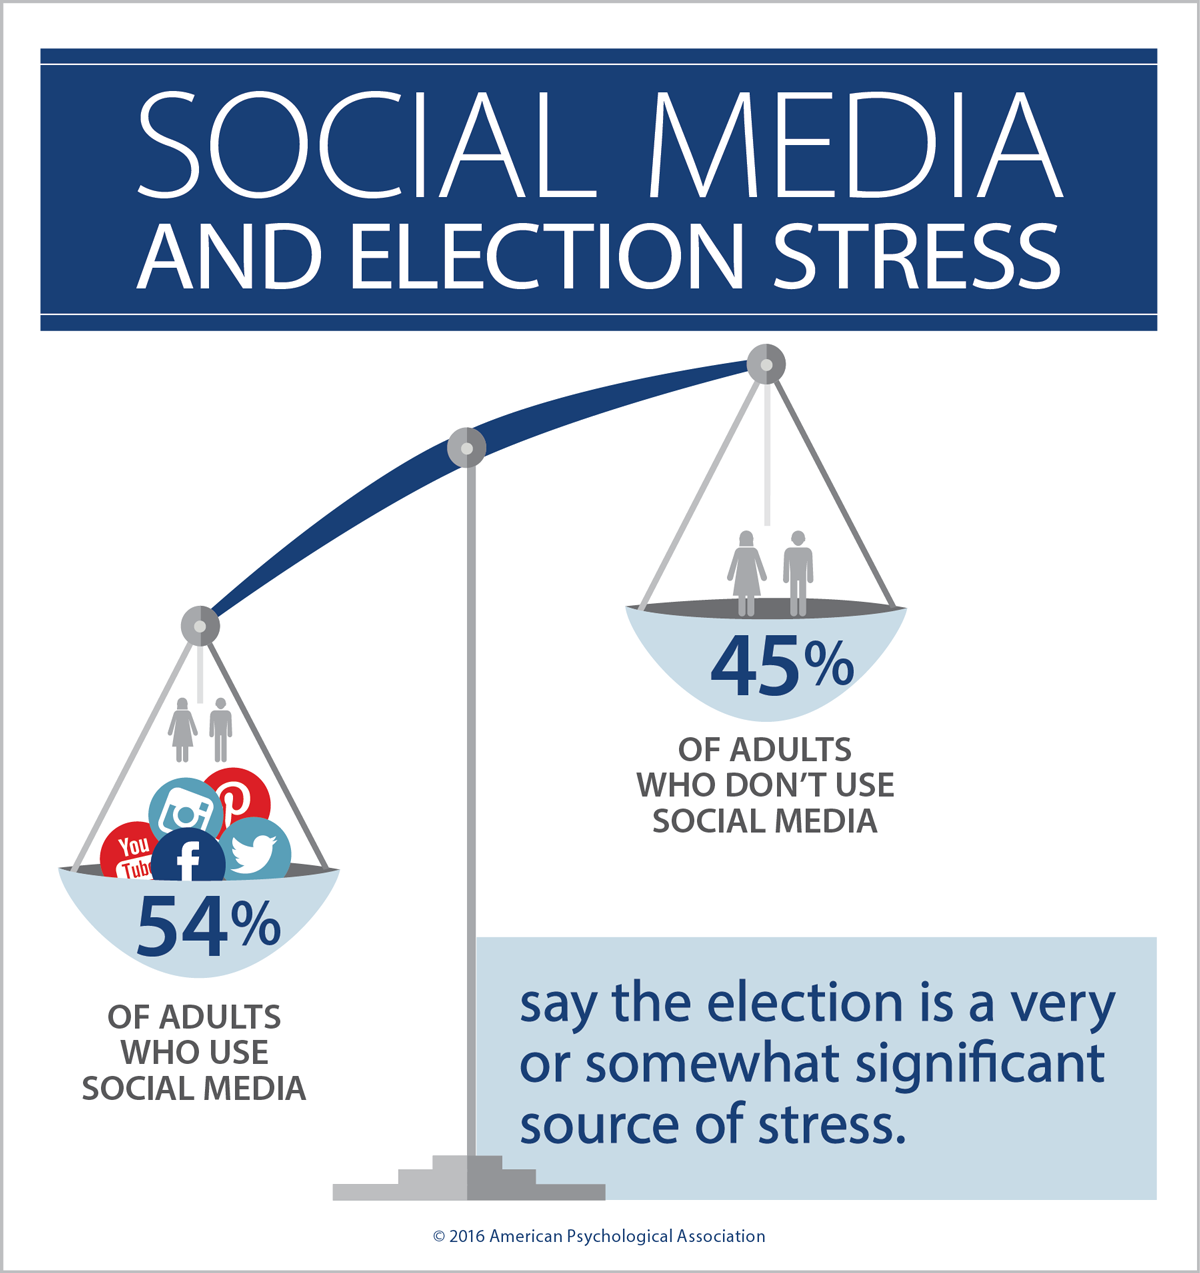 Social Media and Election Stress